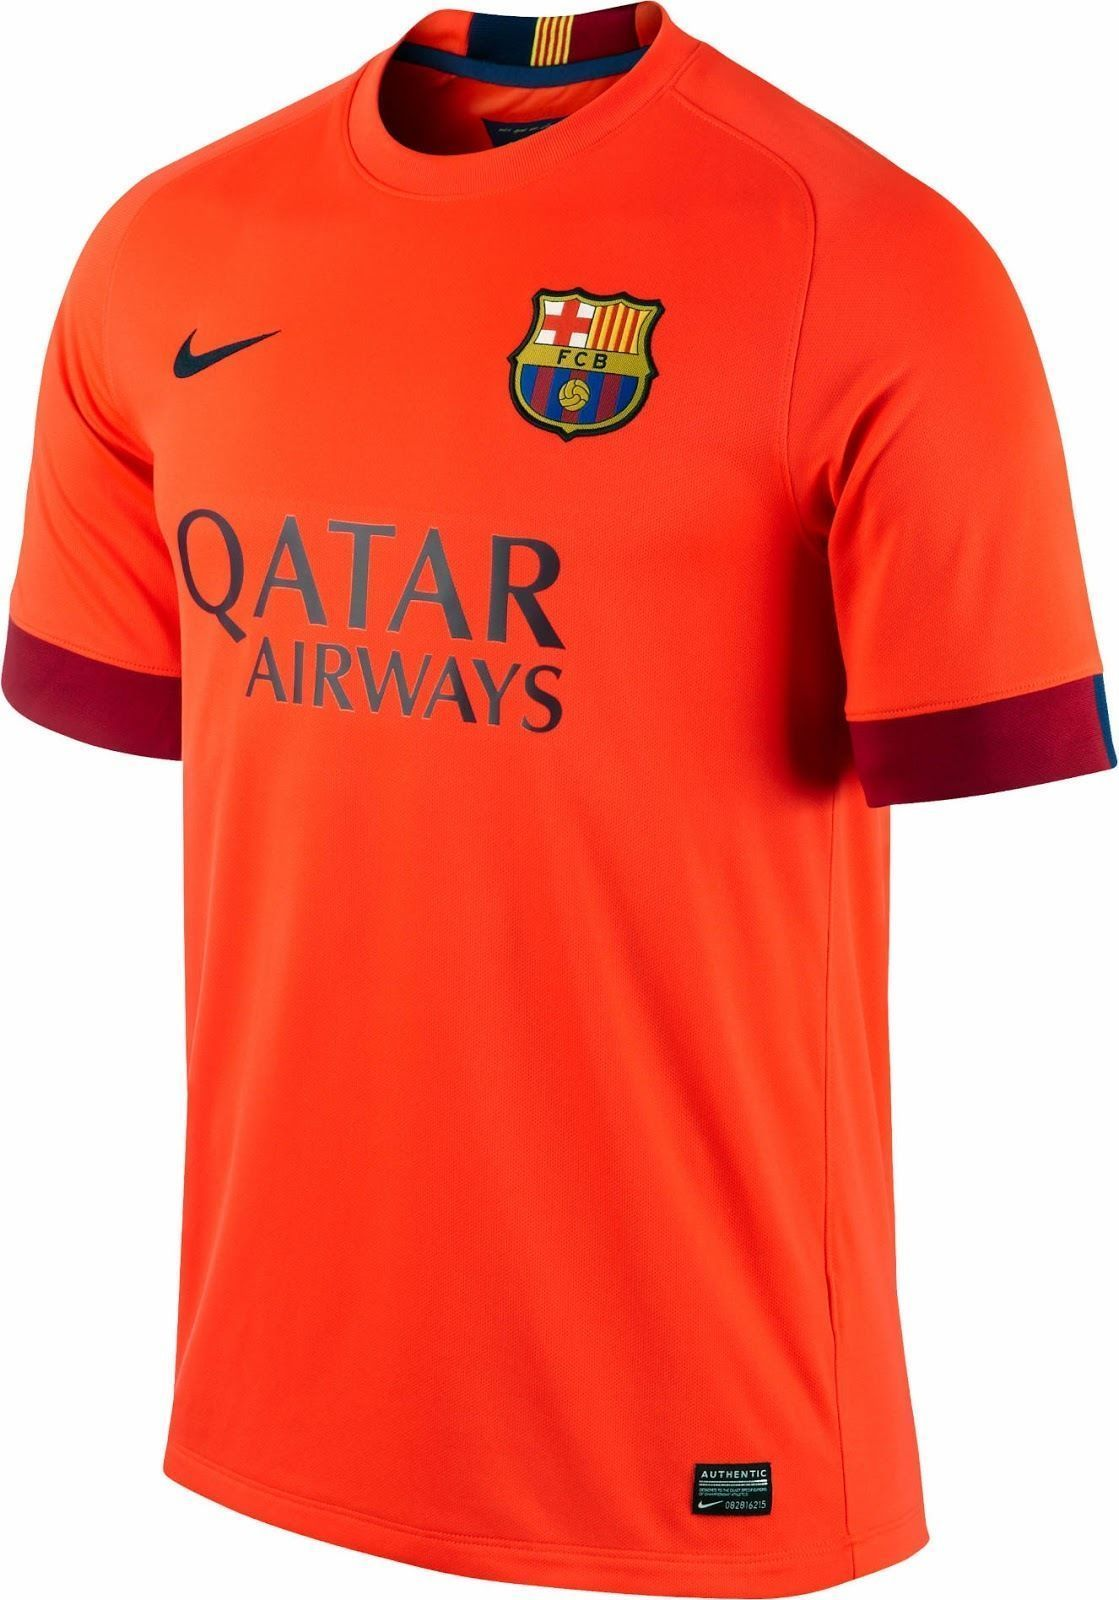 b7e07a0a7 NIKE CARLES PUYOL FC BARCELONA AWAY JERSEY 2014 15 TEAM LOYALTY. TOTAL  COMFORT. The 2014 15 FC Barcelona Stadium Away Men s Football Shirt is made  with ...